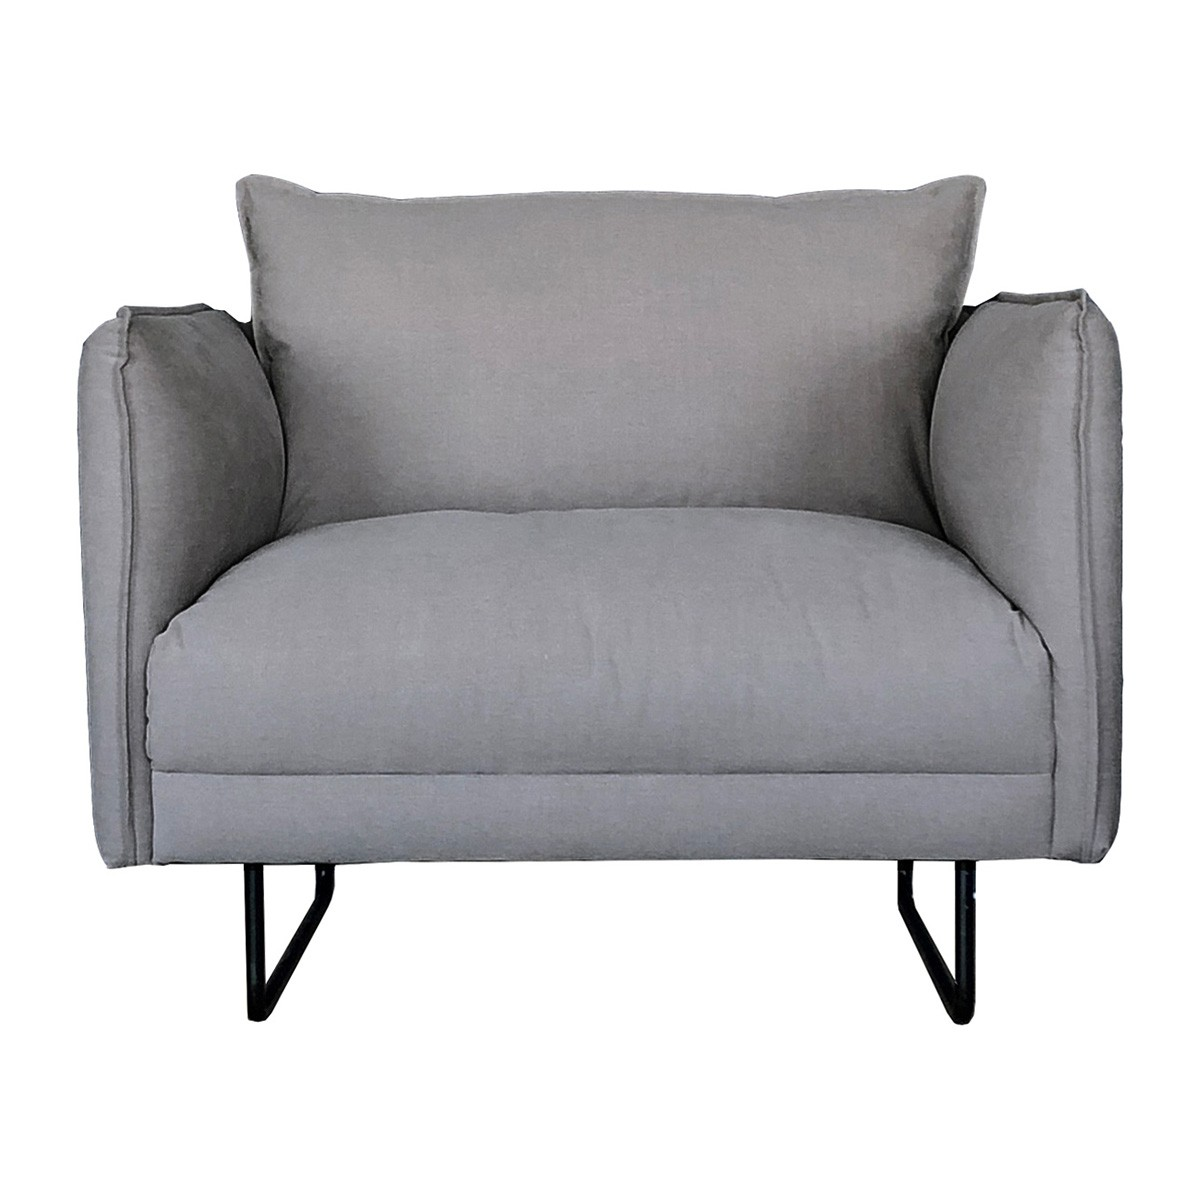 Millicent Fabric Armchair, Grey